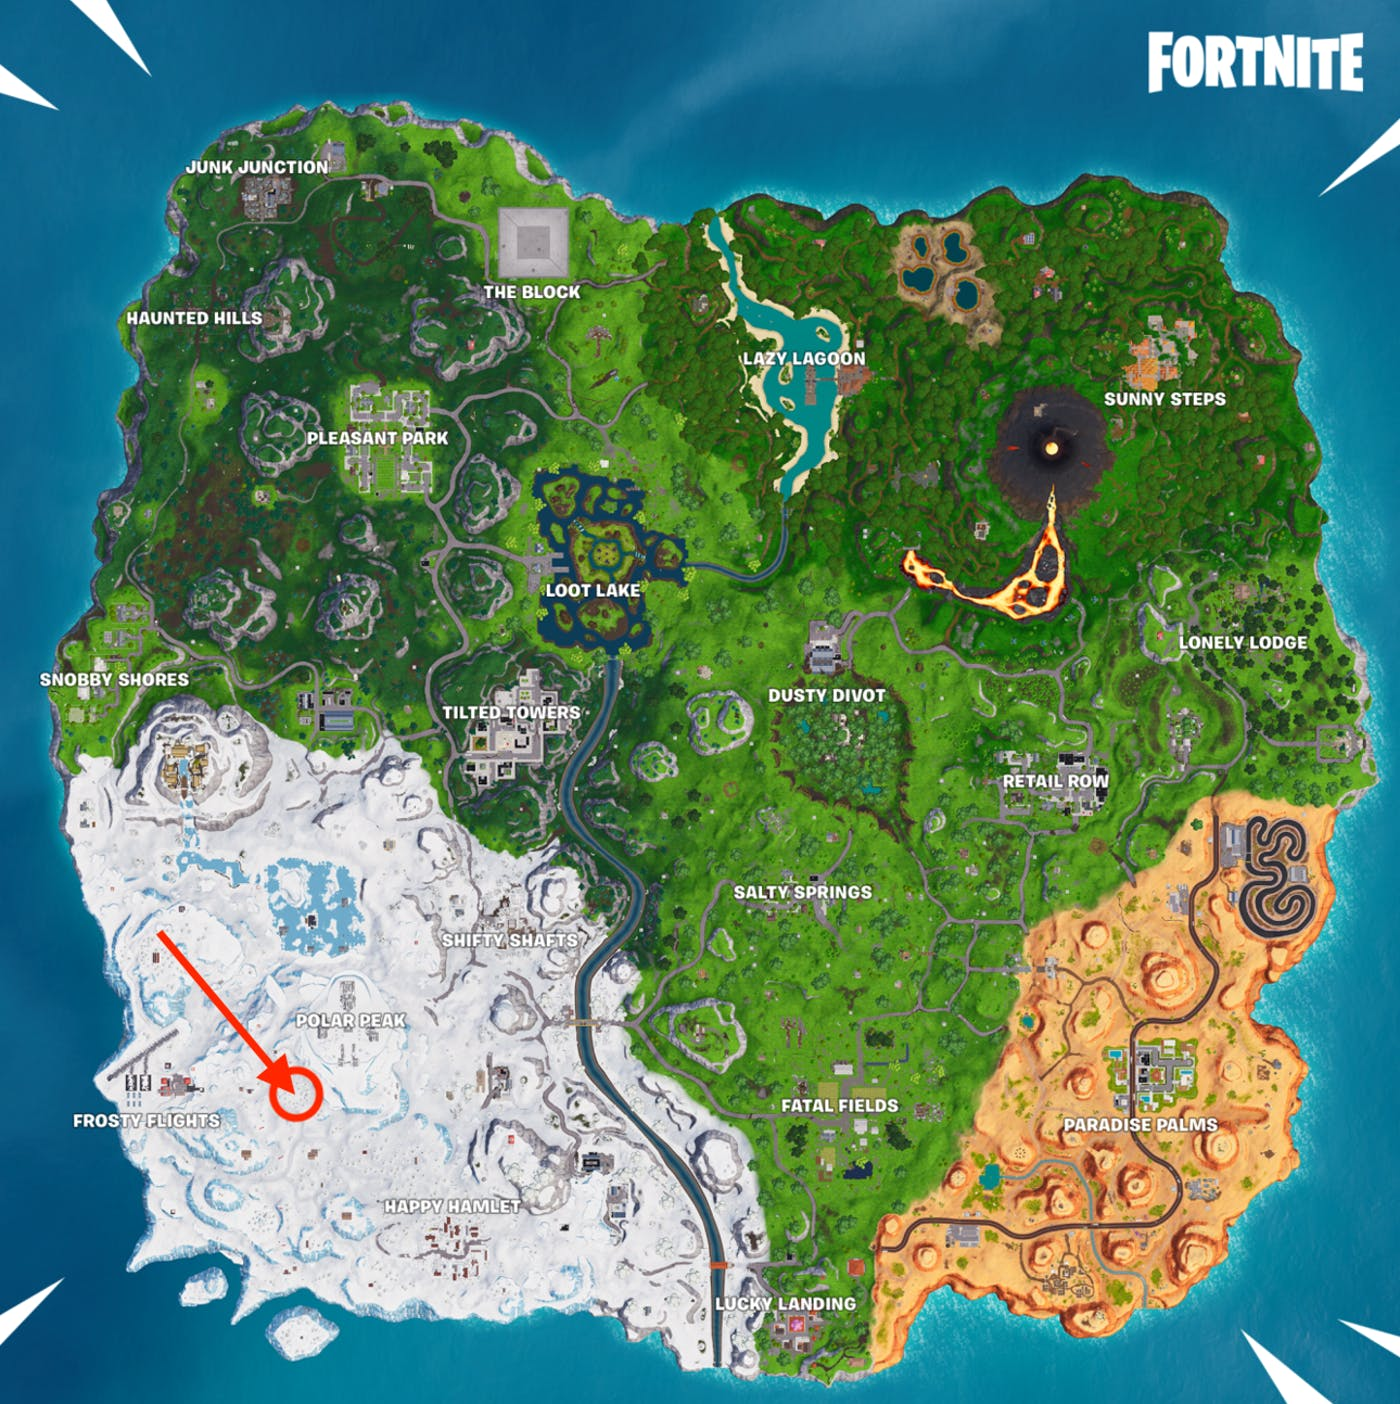 Fortnite' Week 3: Where the Magnifying Glass Sits on the Treasure